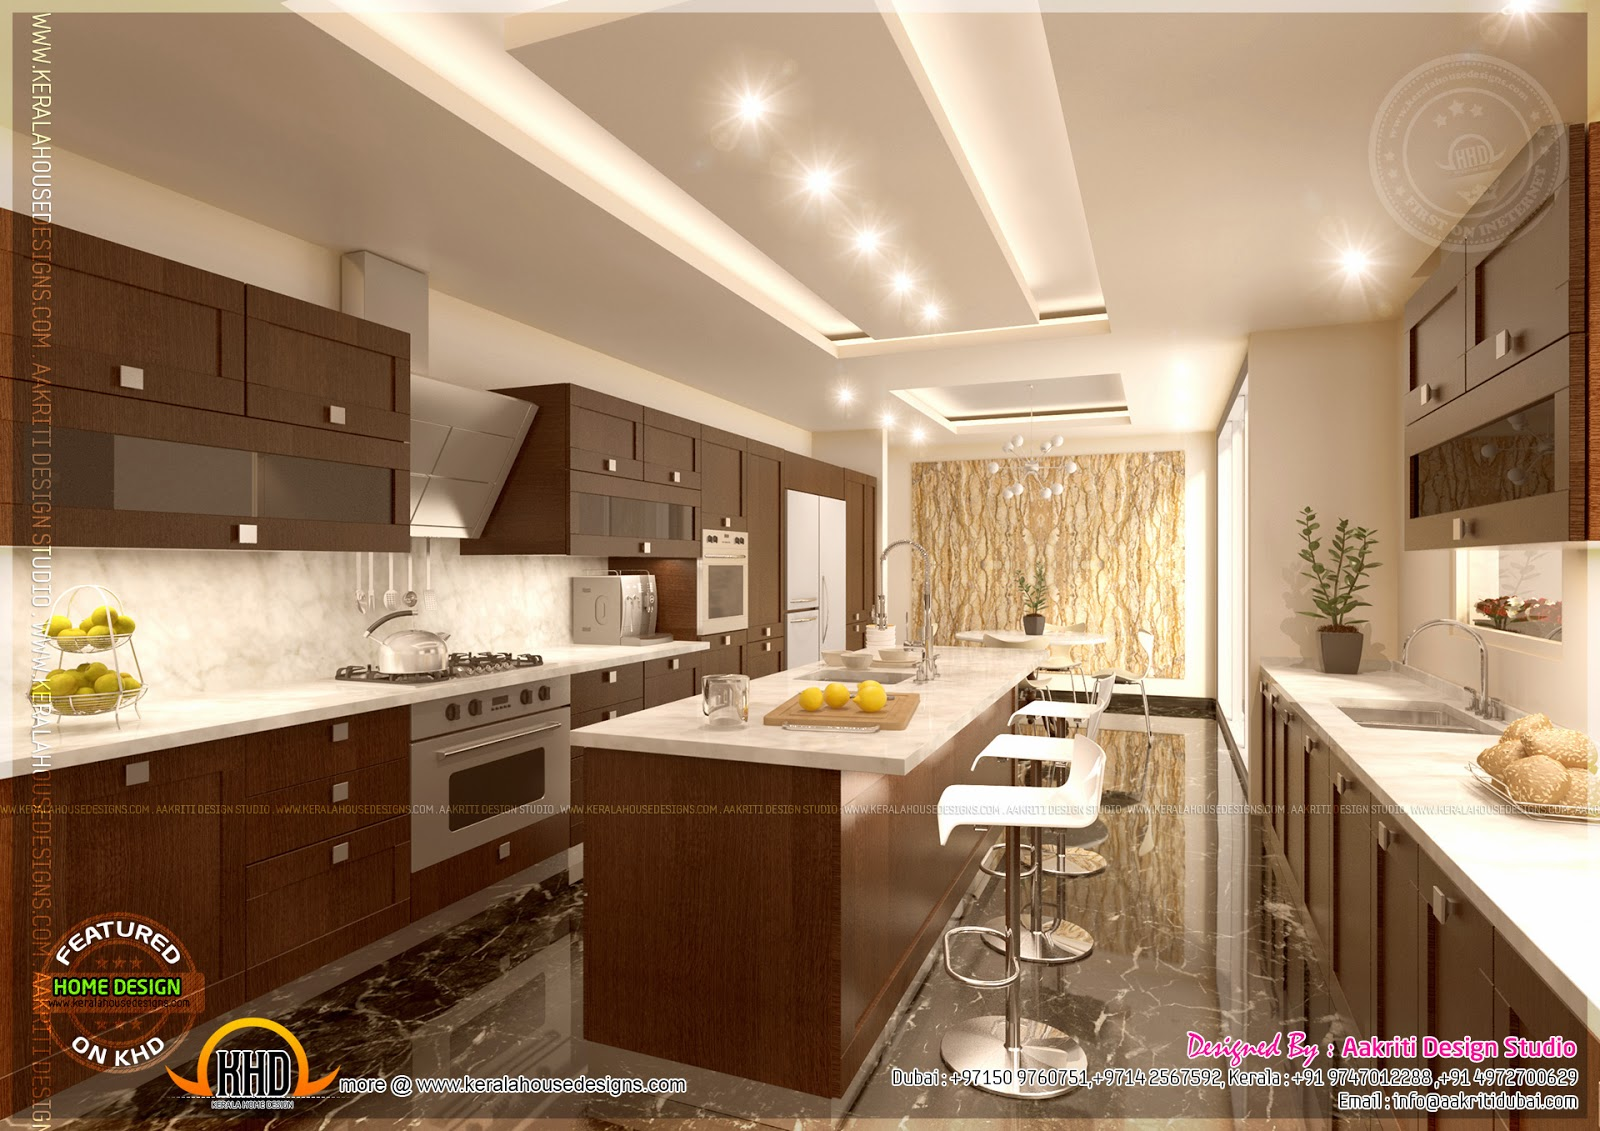 kitchen designs by aakriti design studio kerala home design and floor plans. Black Bedroom Furniture Sets. Home Design Ideas